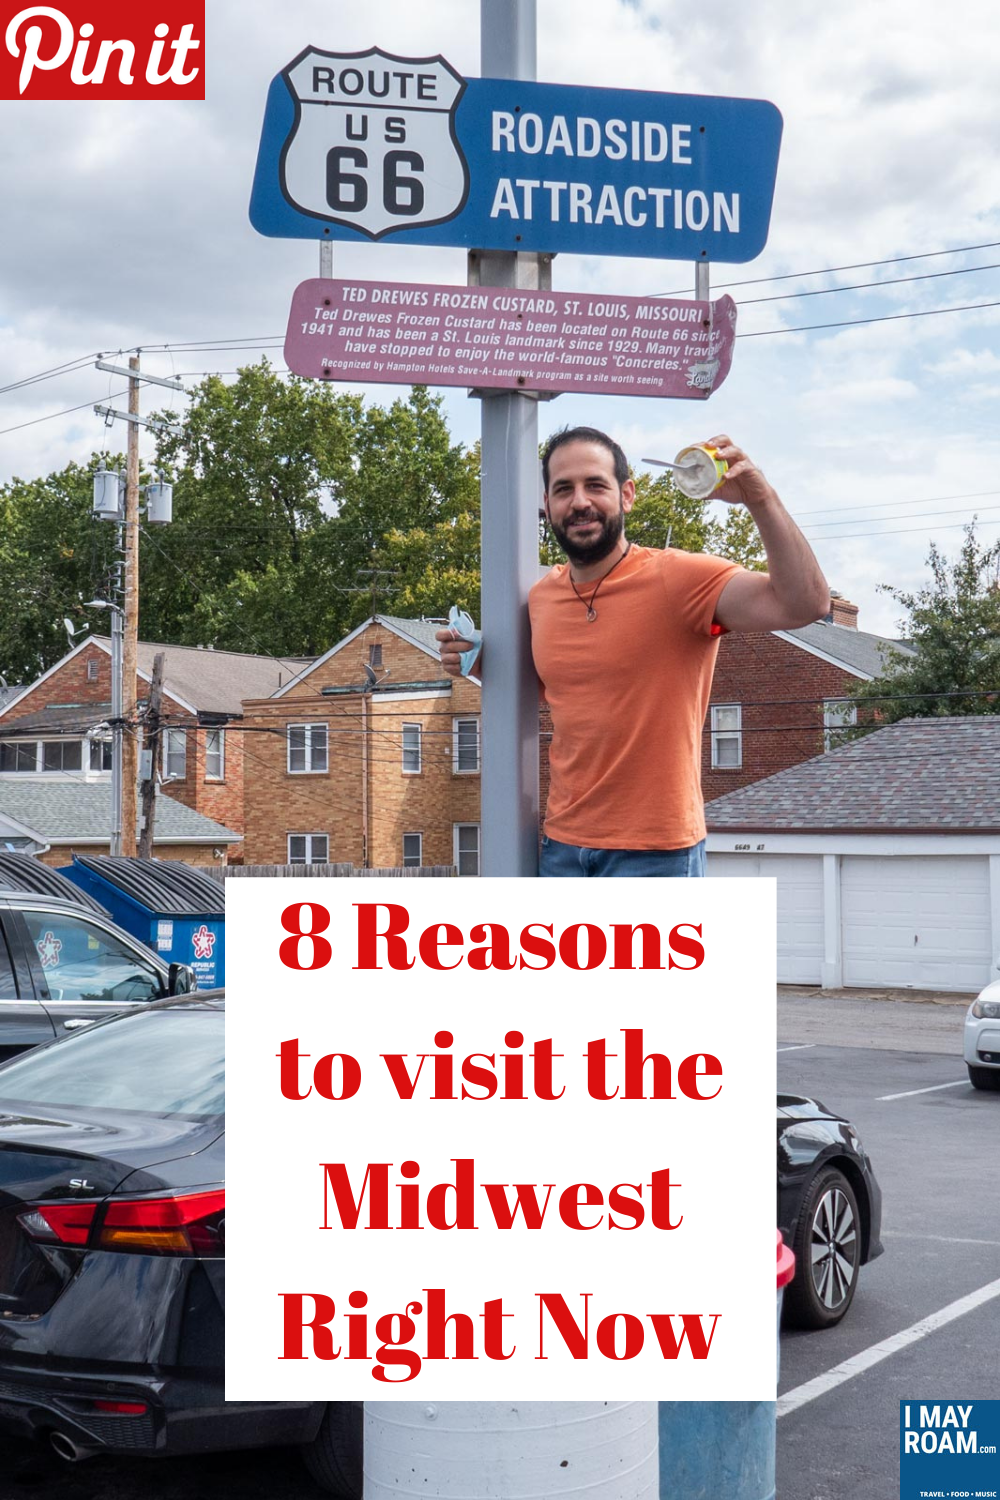 Pinterest 8 Reasons to visit the Midwest Right Now